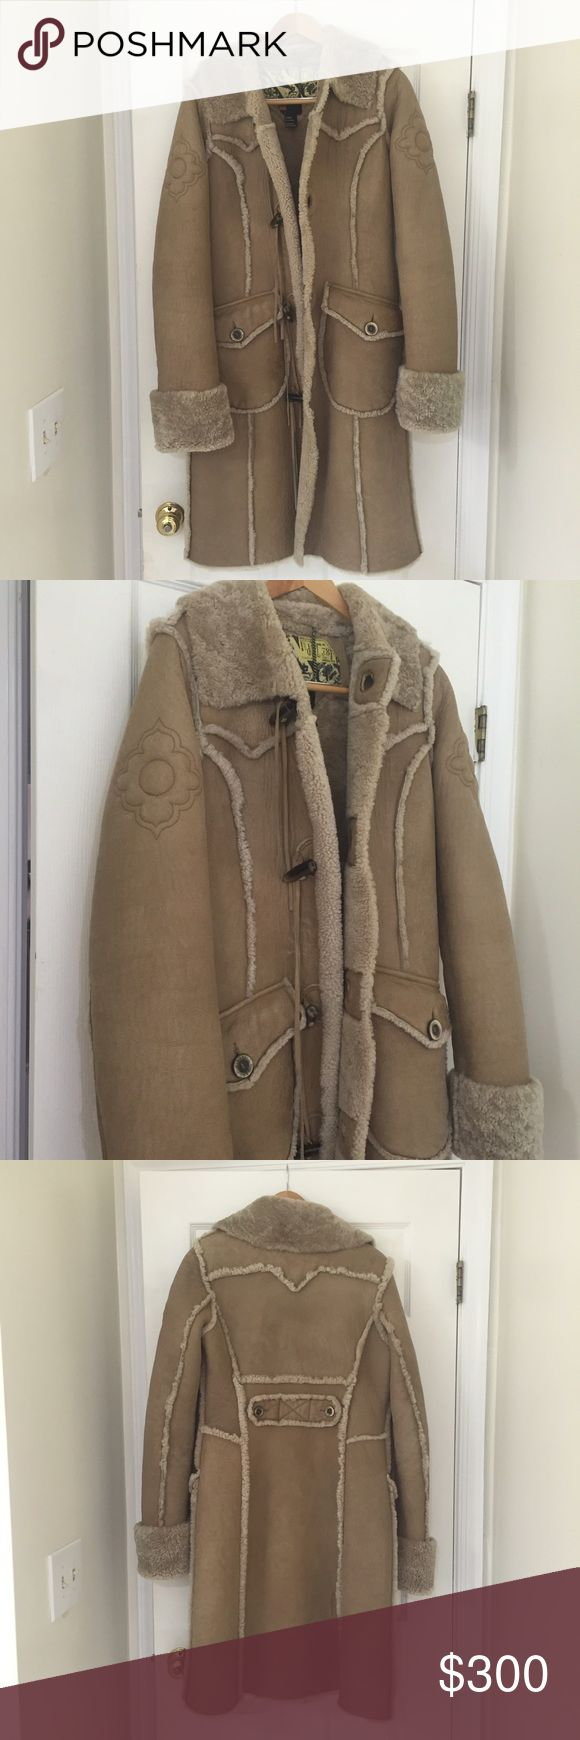 Boho coat in leather and sheep wool Amazing Diesel coat in 100% leather. Lining inside is wool. I just got it back from the dry cleaners so it's ready to be enjoyed! Size medium. Diesel Jackets & Coats